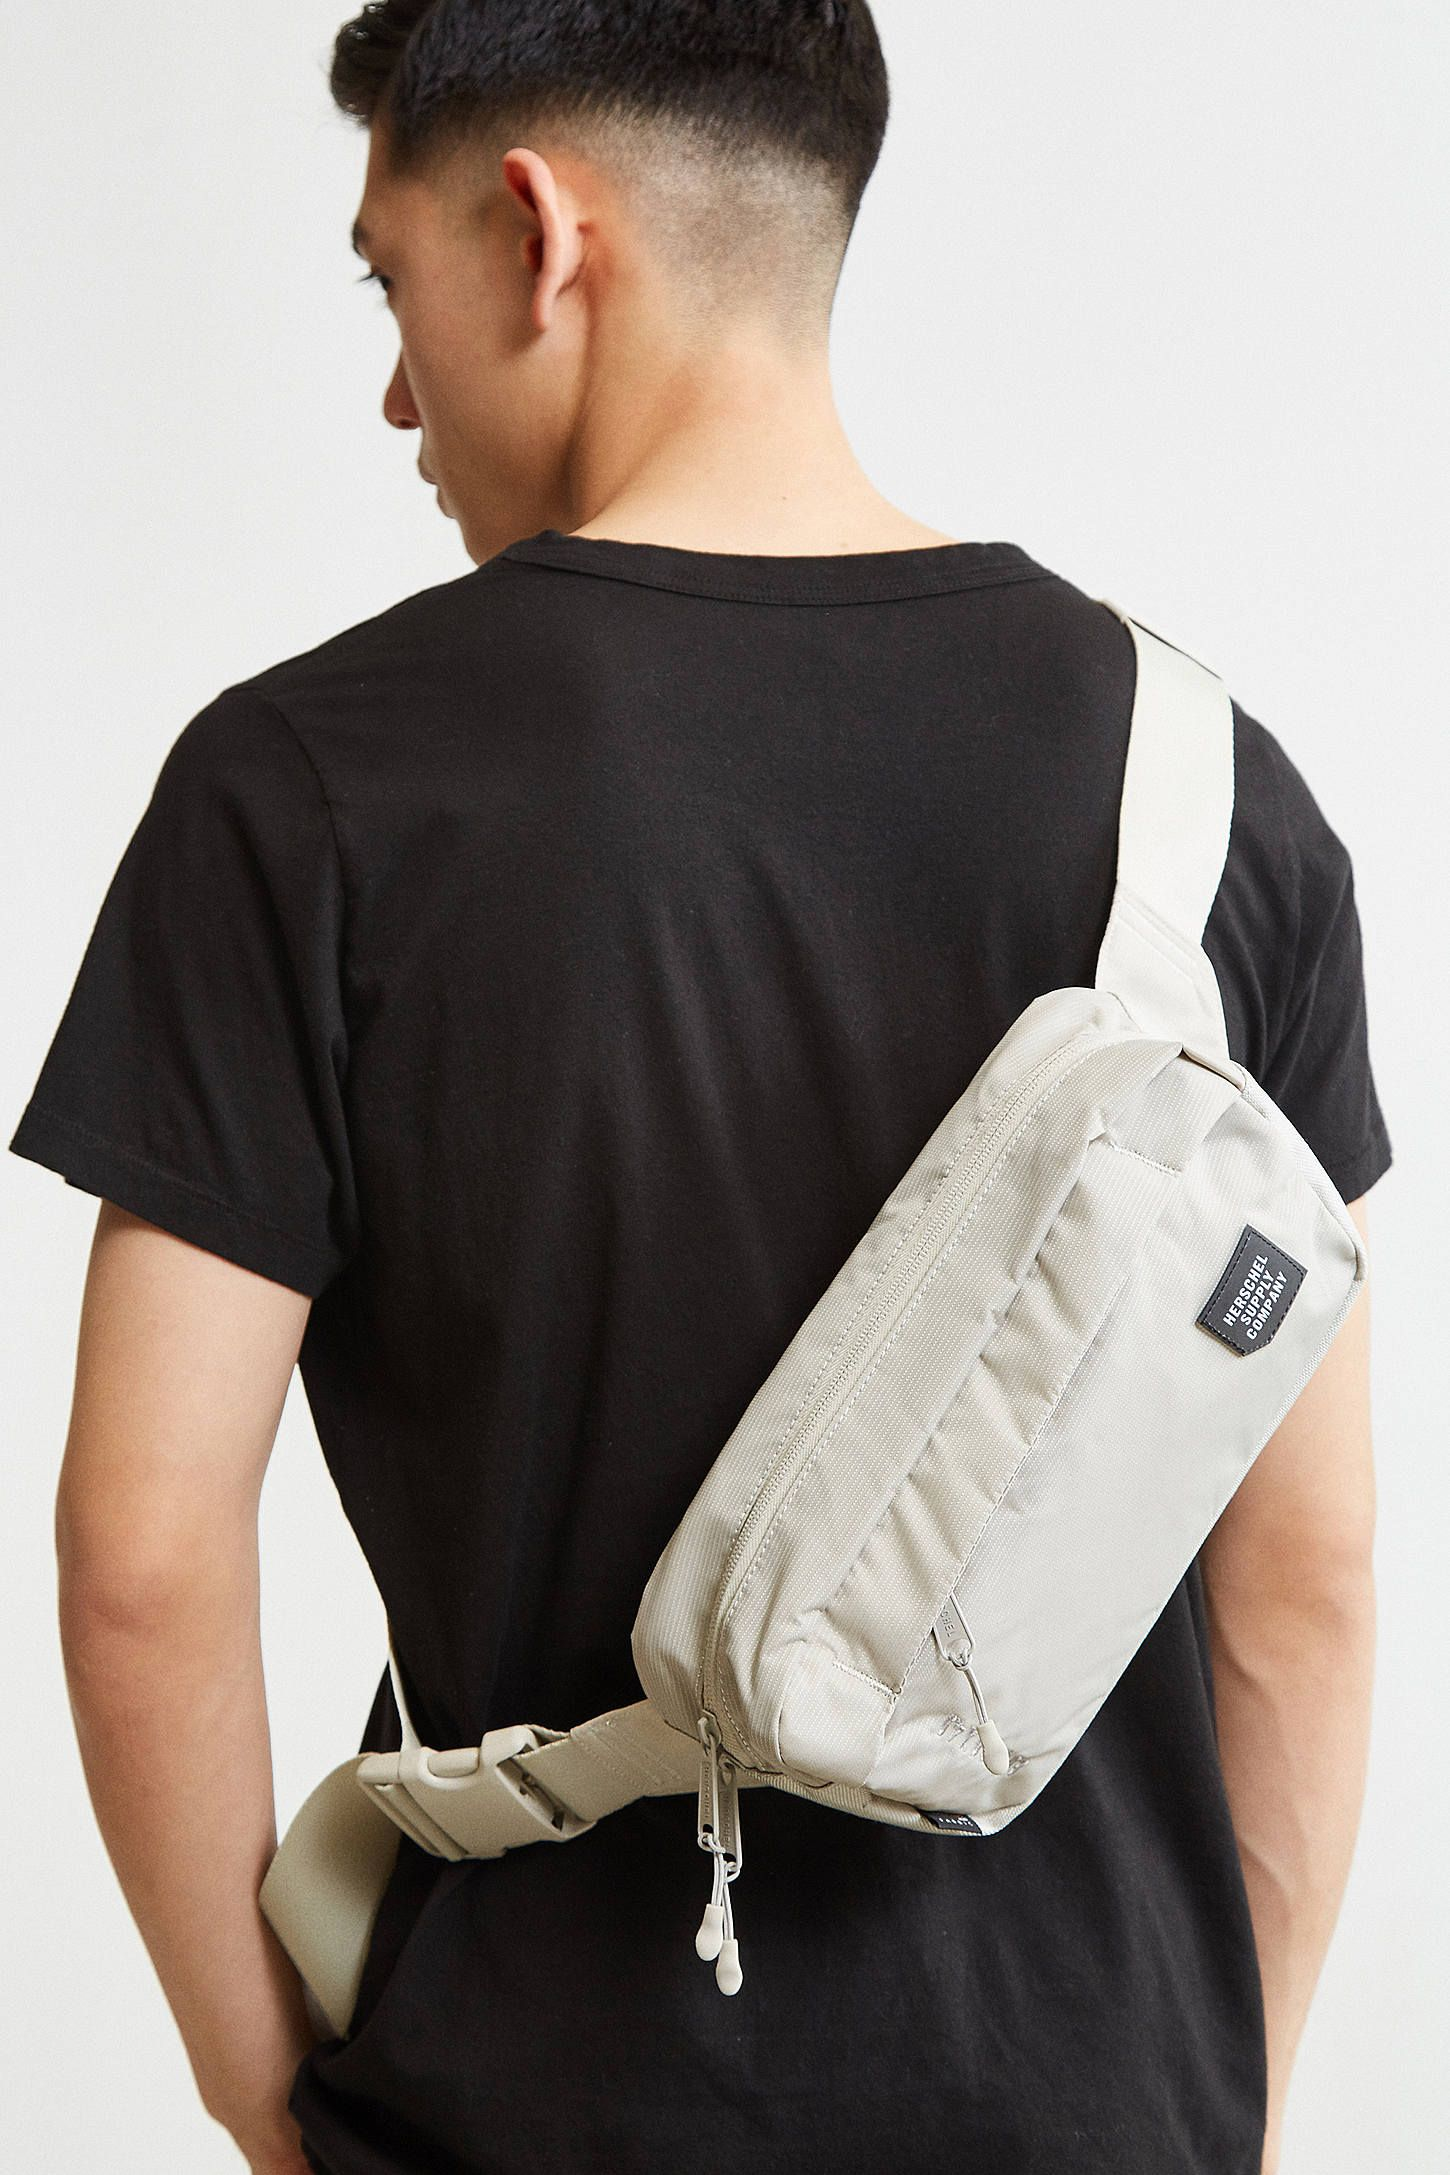 a23b5caab1a9 Shop the Herschel Supply Co. Tour Medium Sling Bag and more Urban  Outfitters at Urban Outfitters. Read customer reviews